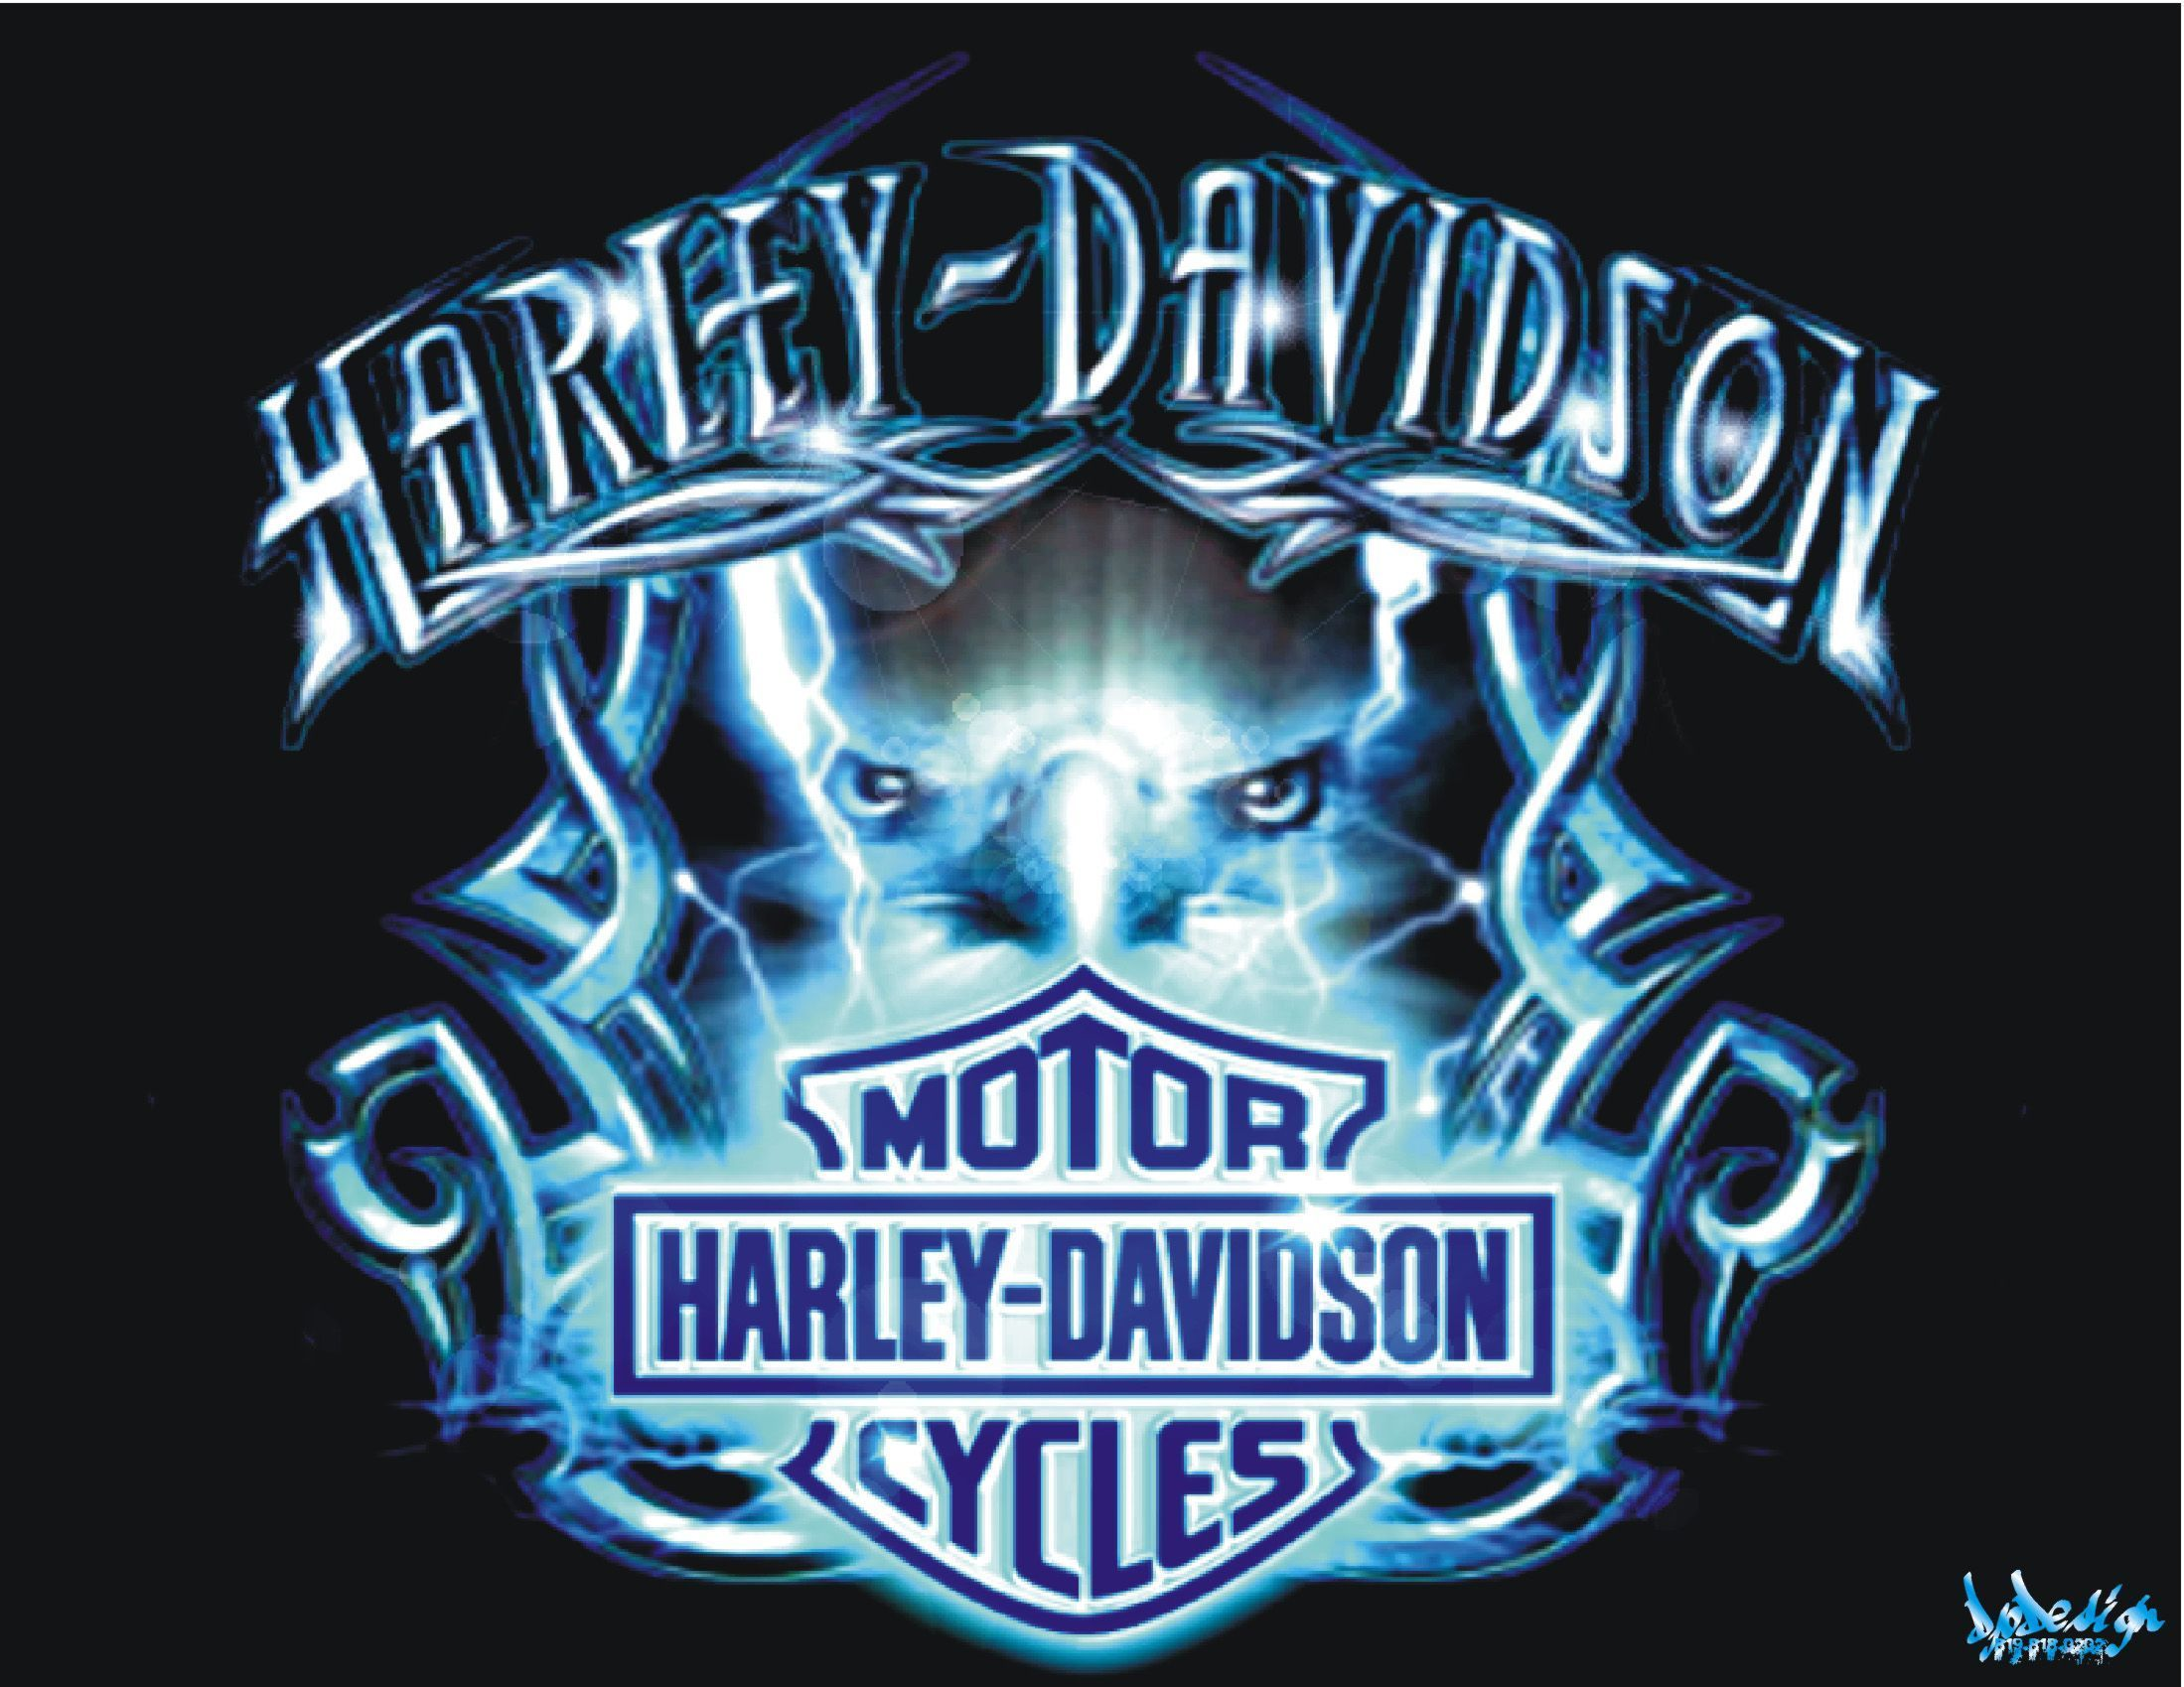 Harley Davidson Desktop Wallpapers Group (78+)